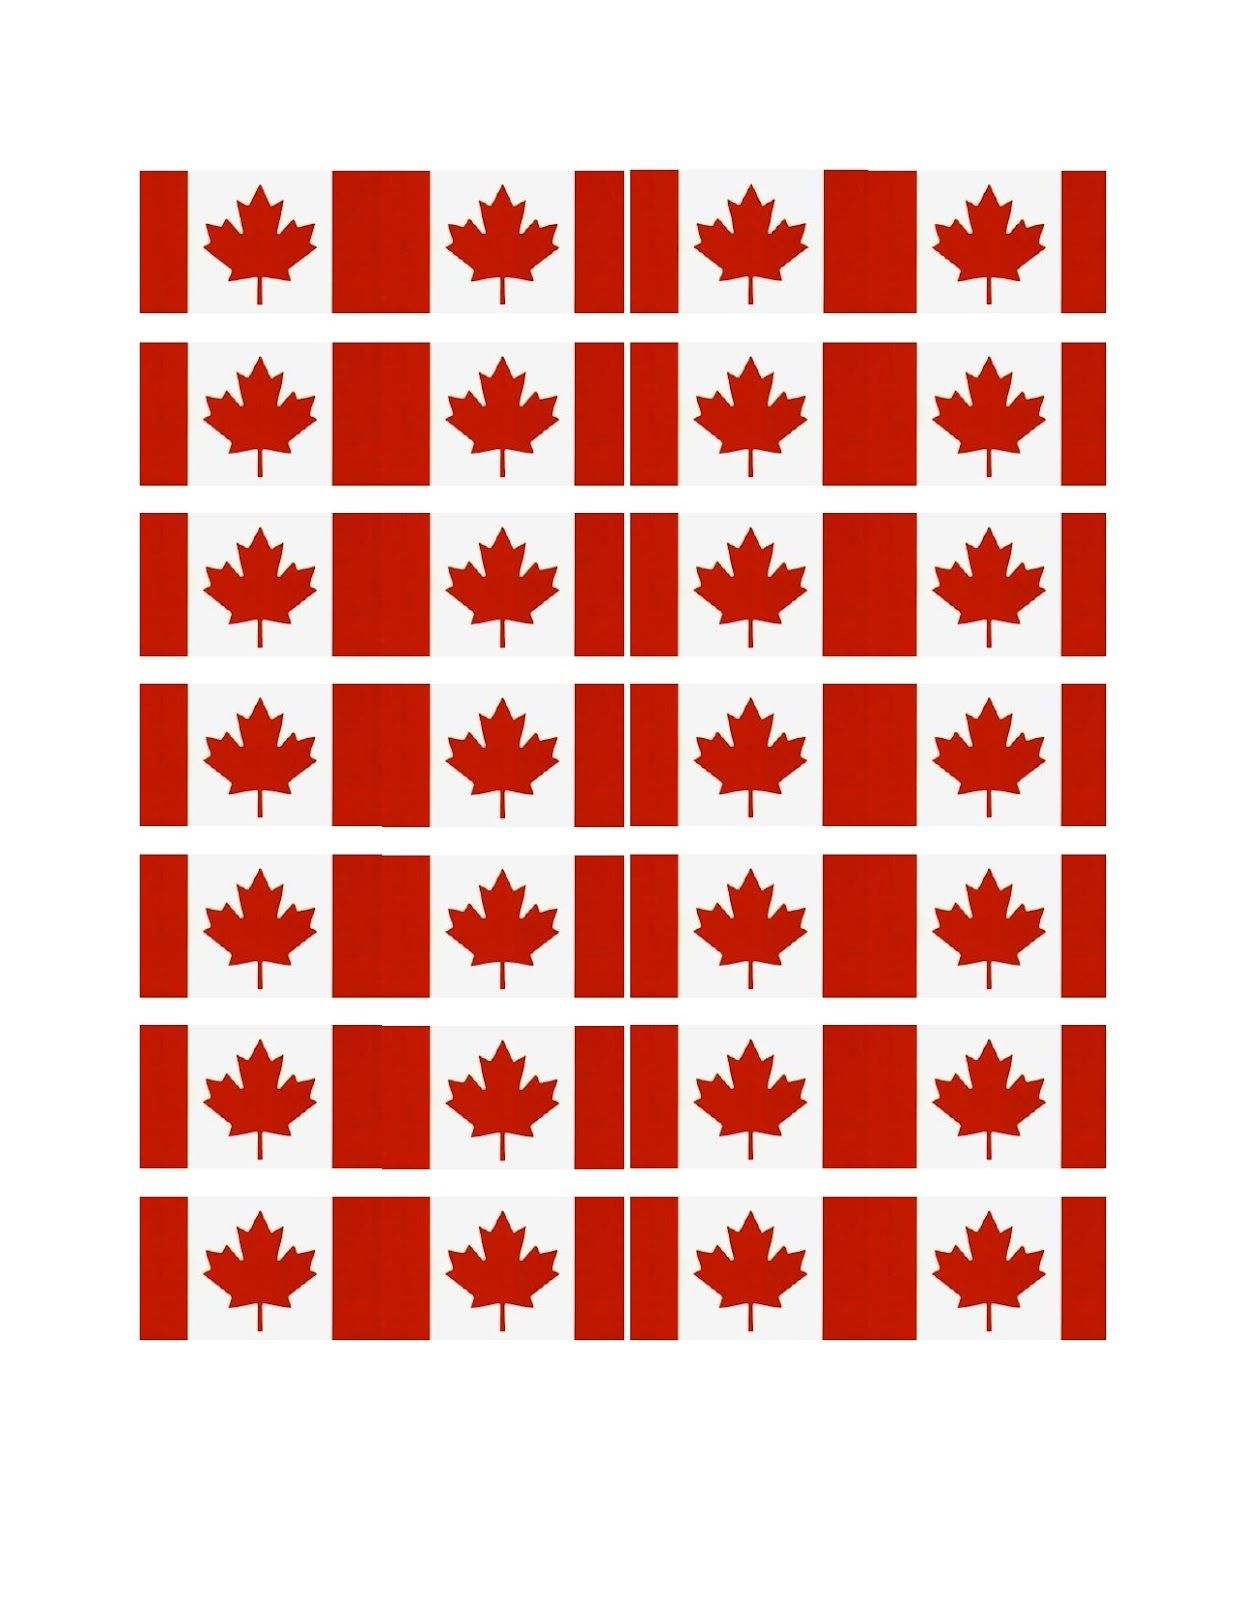 Free Printable Canada Cupcake Flags | Spring & Summer Holidays - Cupcake Flags Printable Free